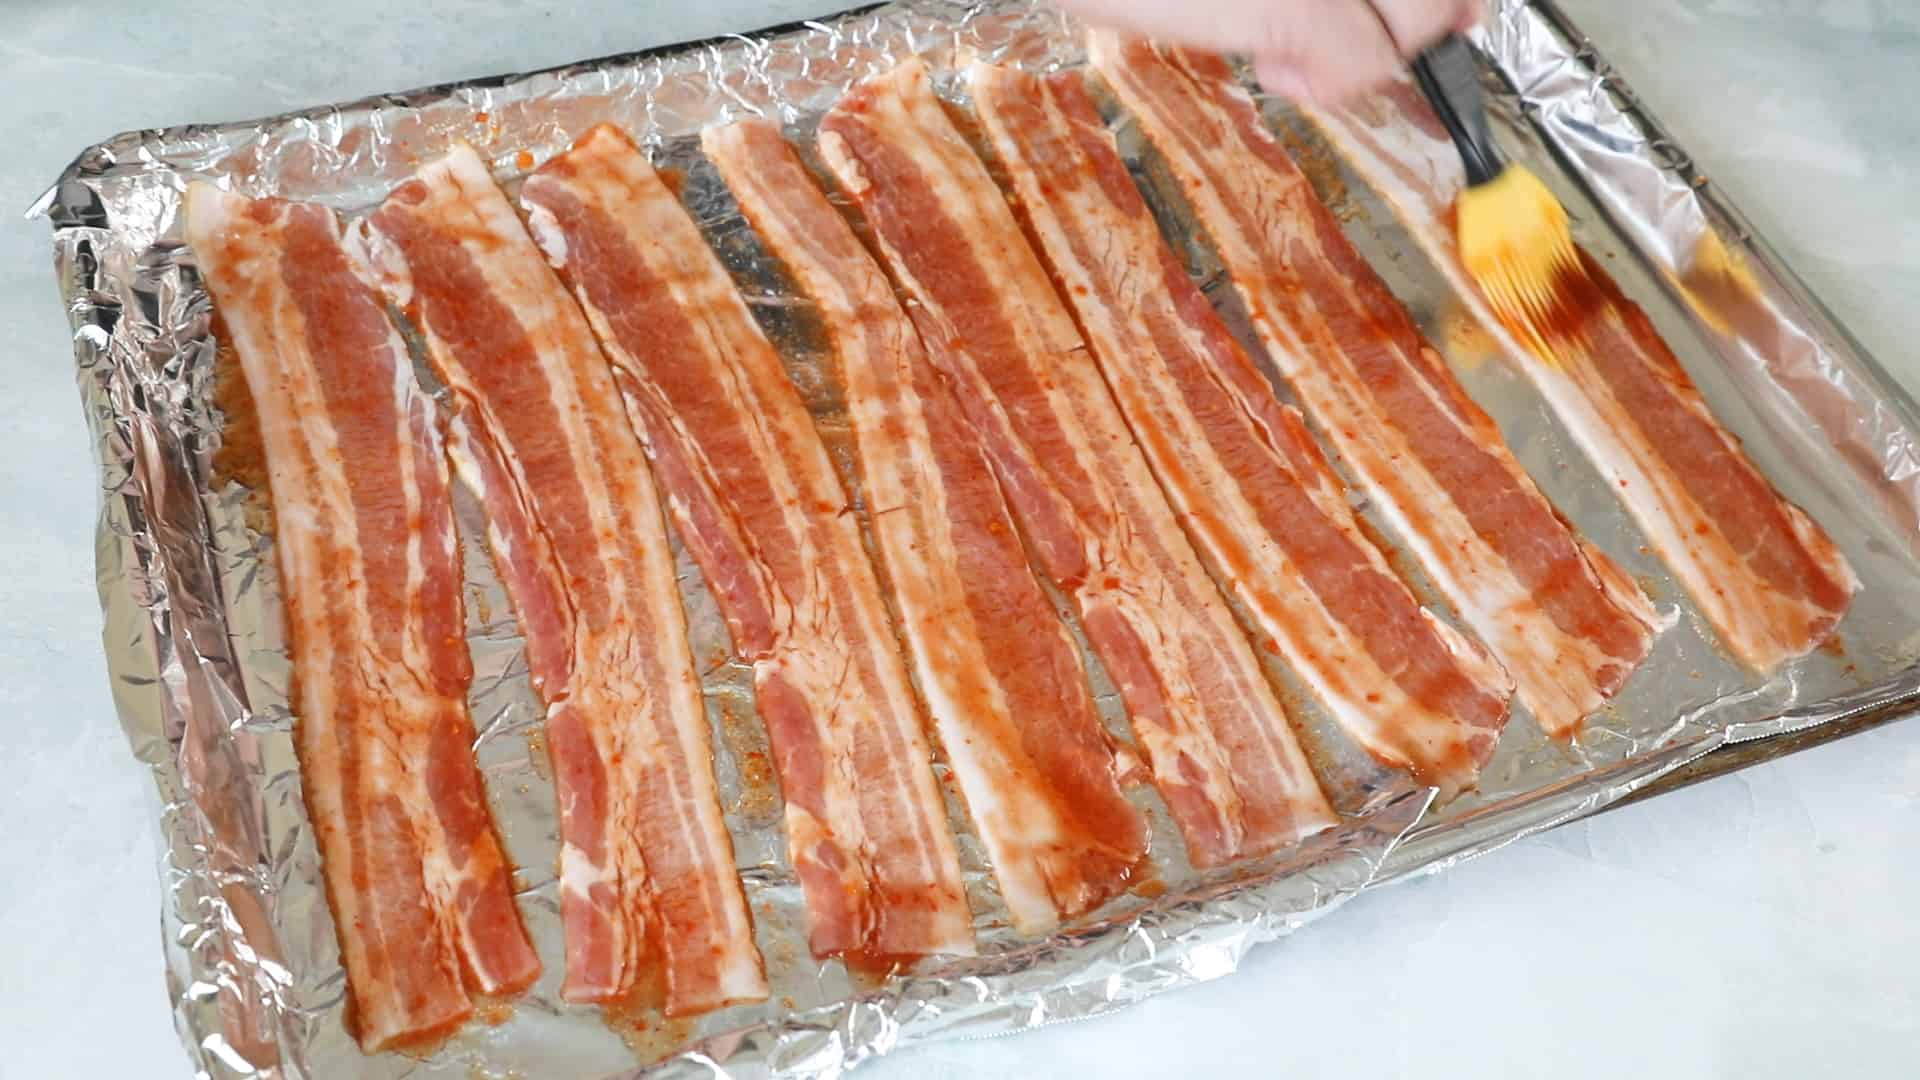 Rub down the bacon with your spicy ghost pepper mixture